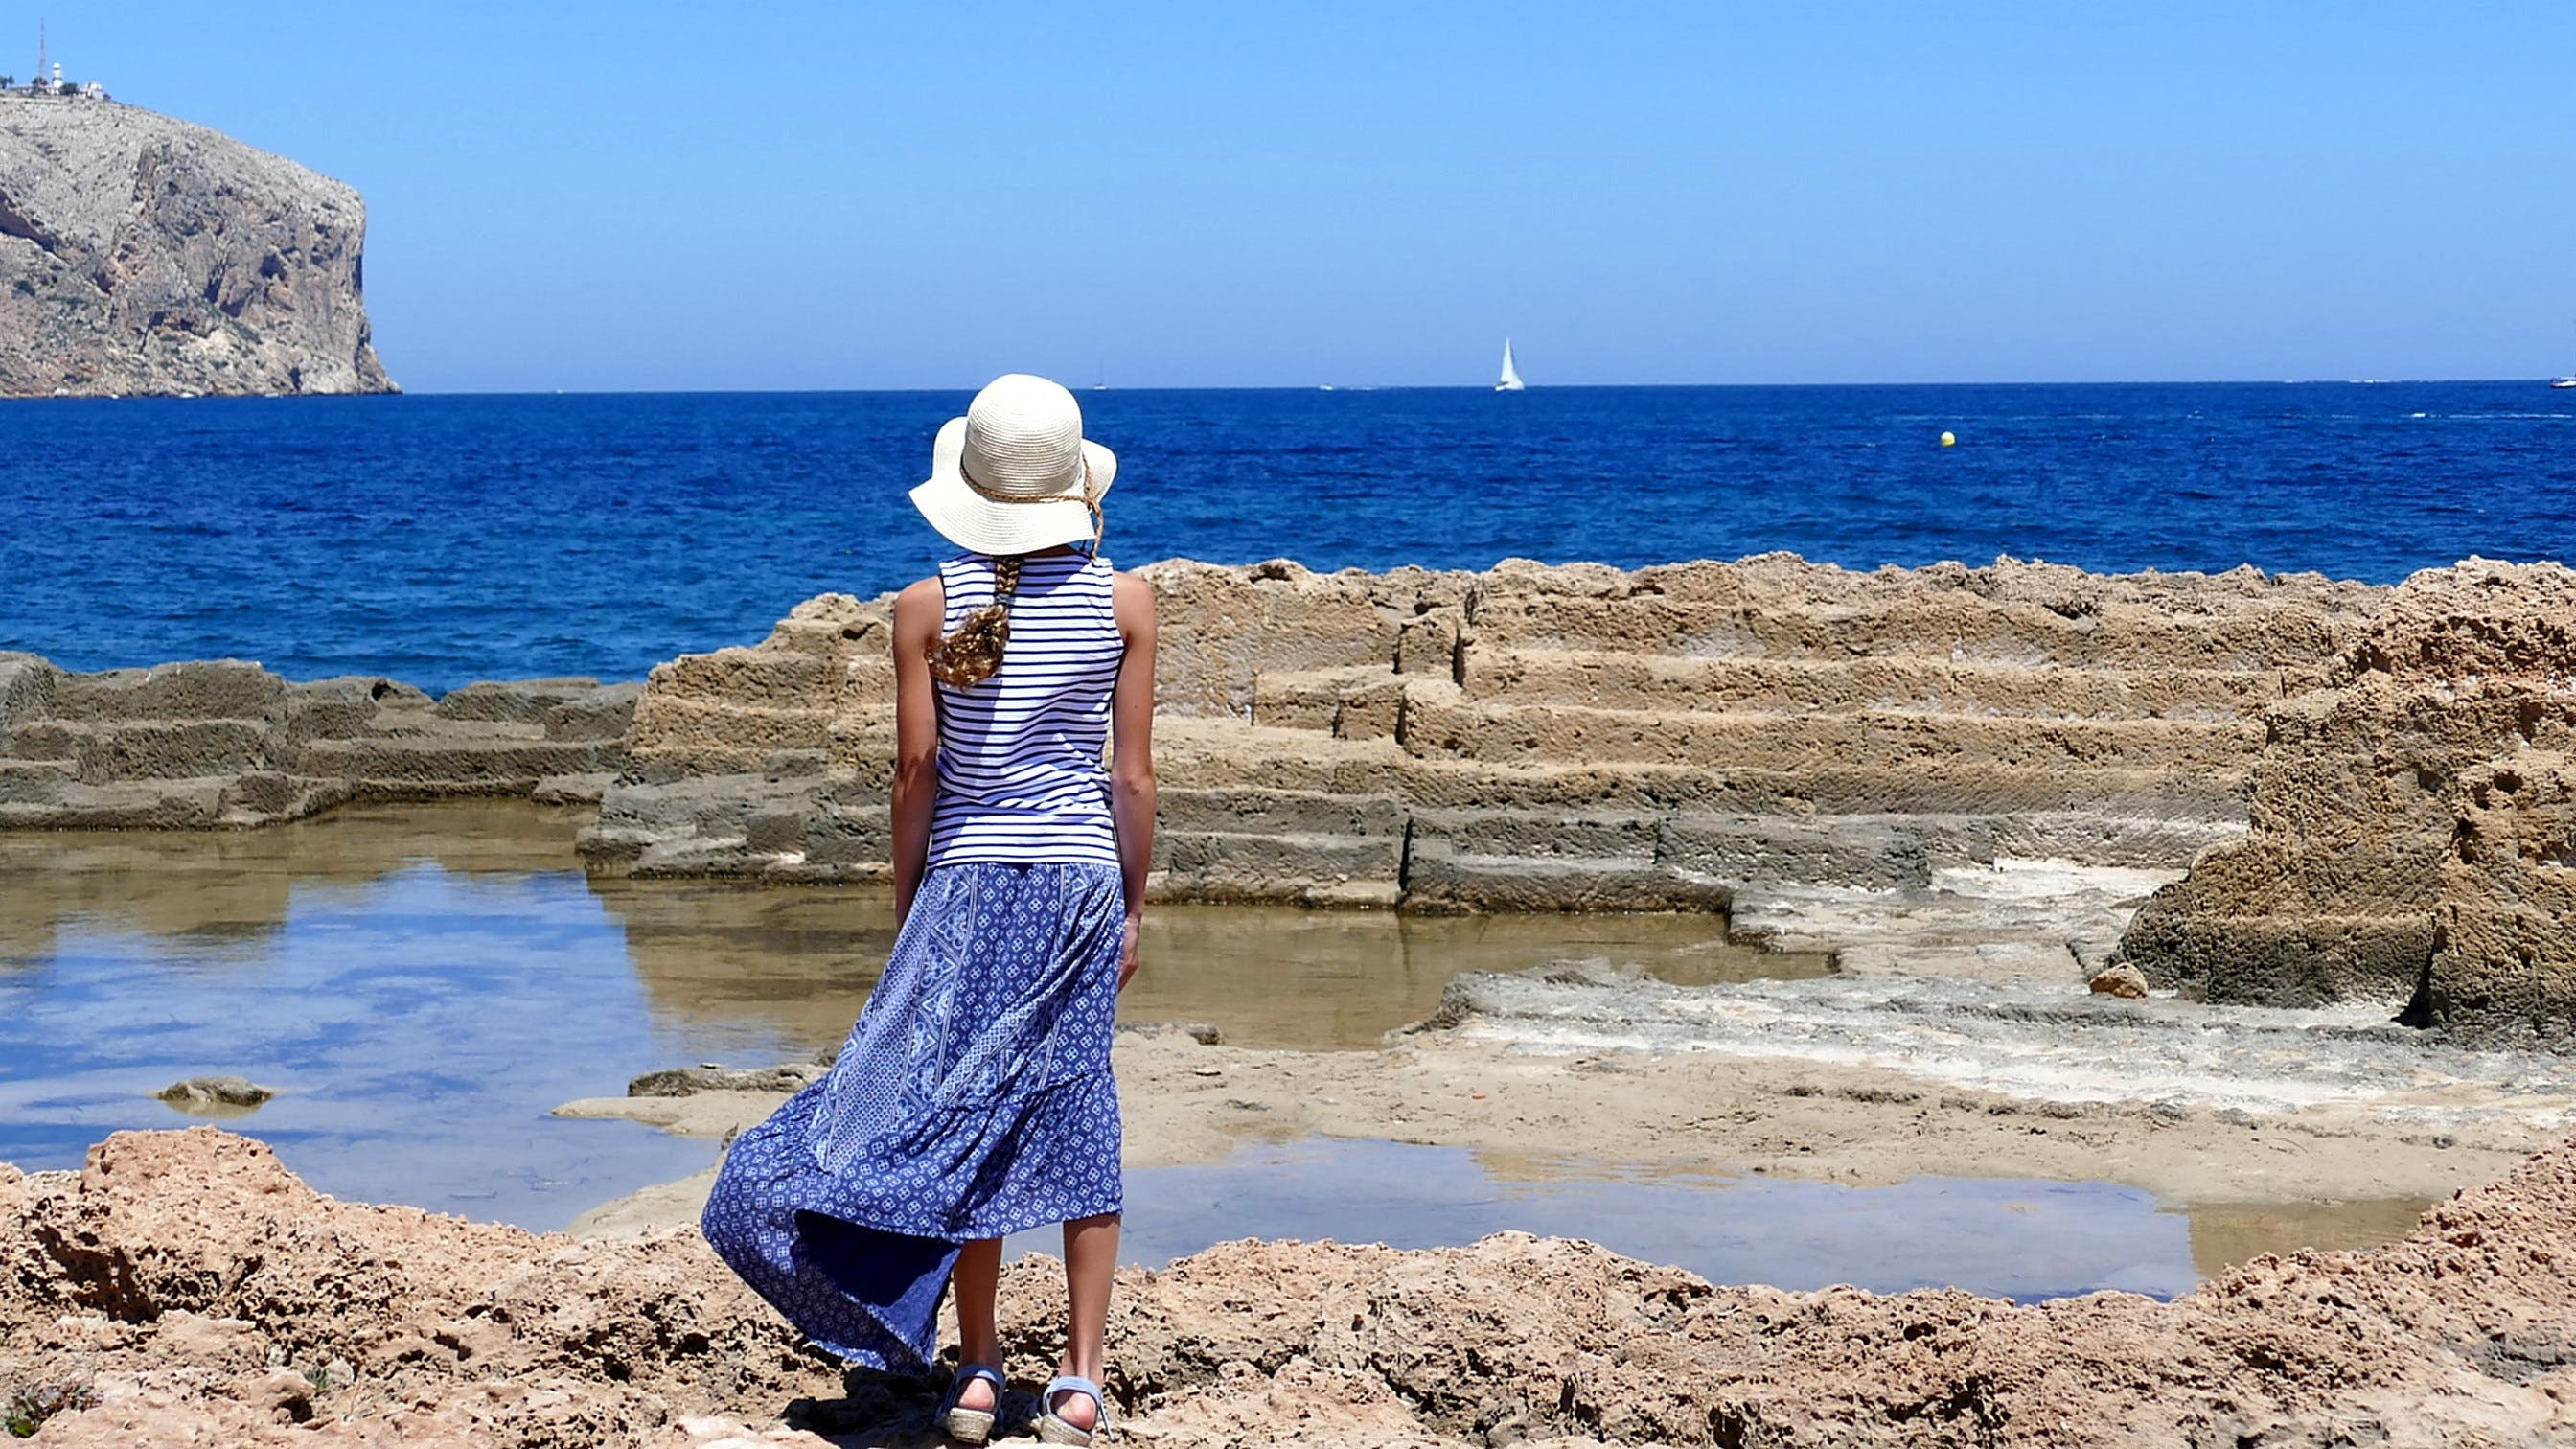 Woman in White and Blue Dress Near Sea